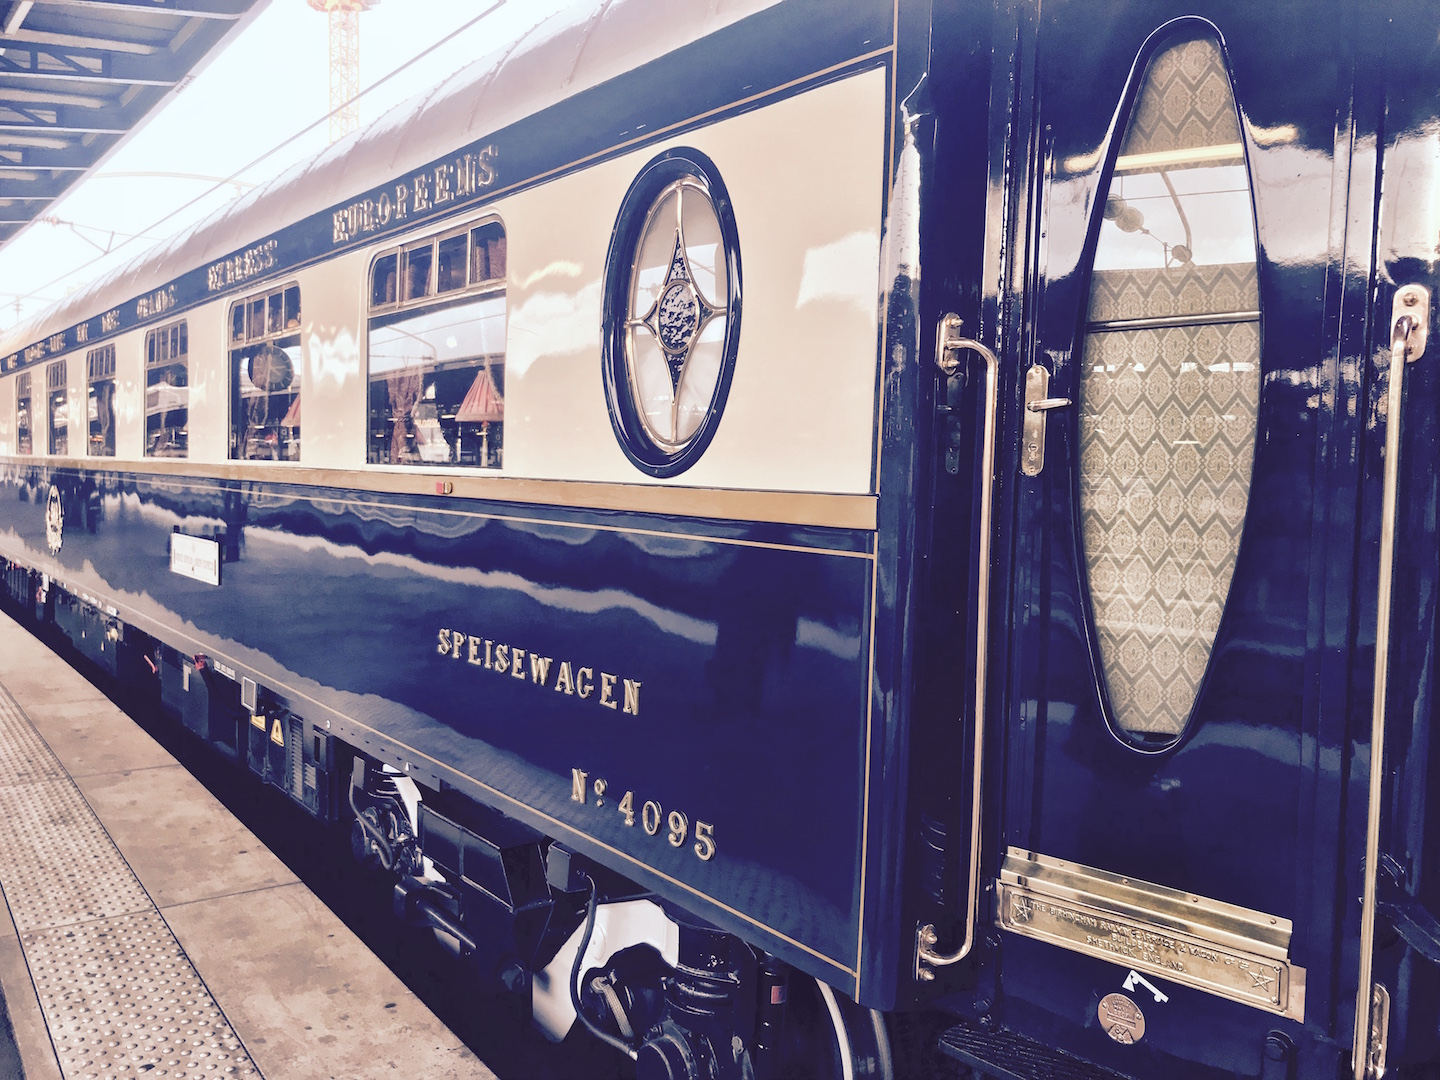 Venice Simplon Orient Express Luxusreisen Travel Blog Reisen 2